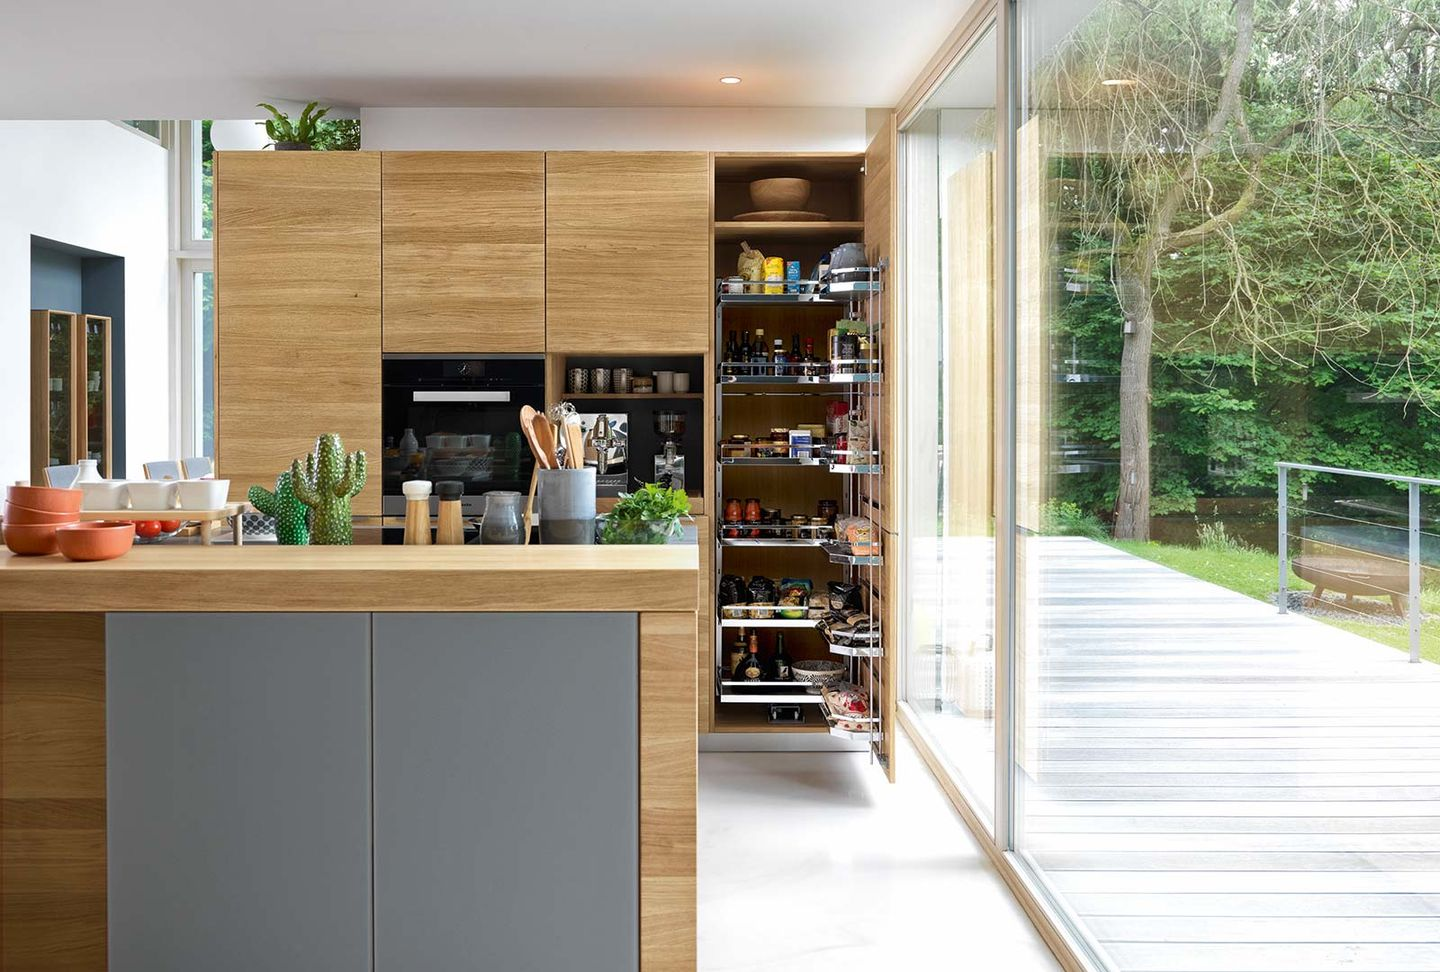 linee wood kitchen combined with coloured glass